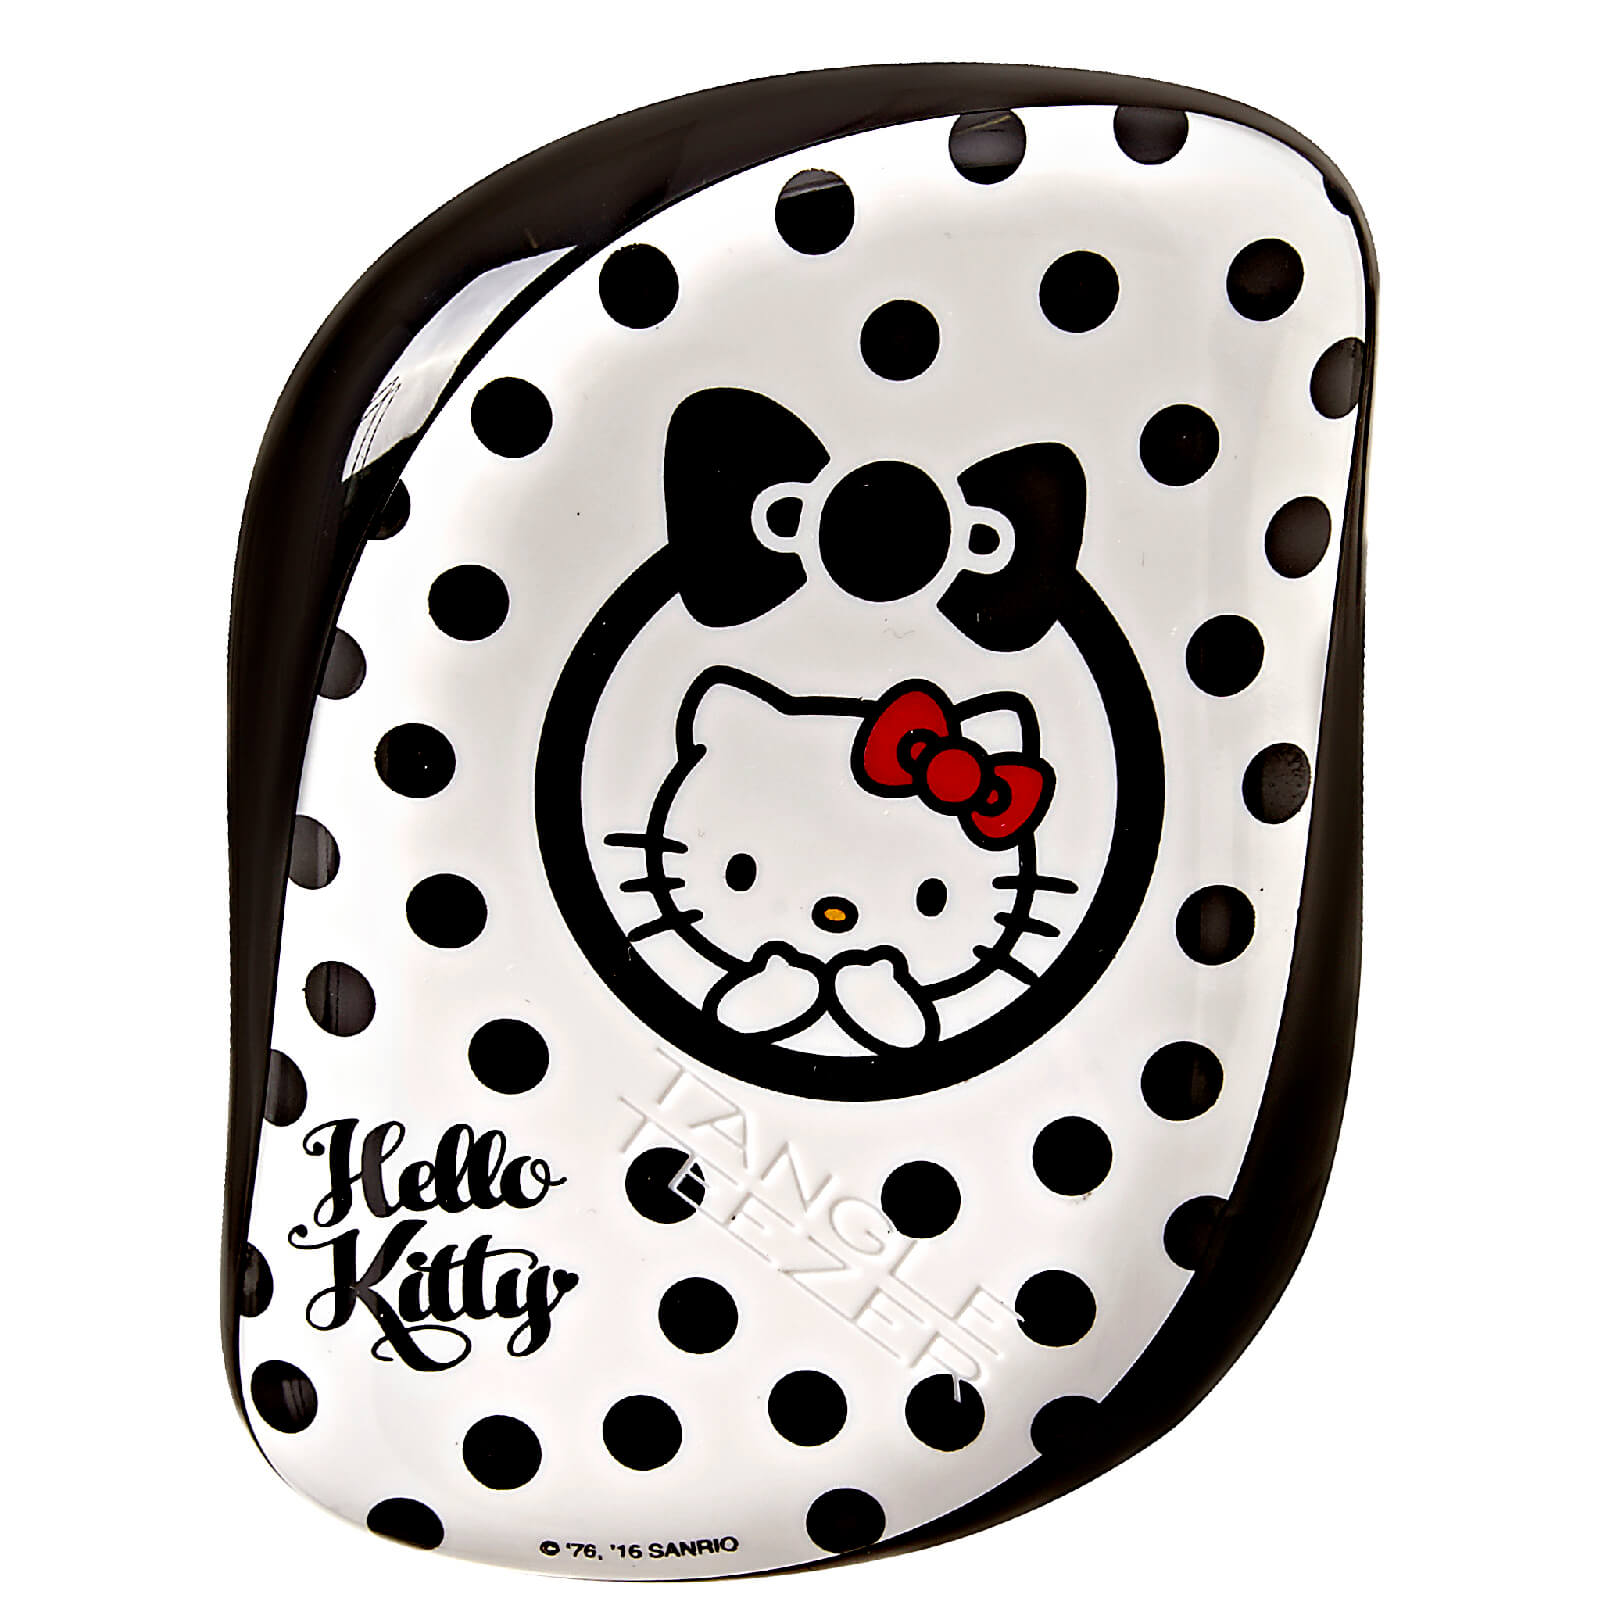 4198a7747 Tangle Teezer Compact Styler Hairbrush - Hello Kitty Black/White | Free  Shipping | Lookfantastic